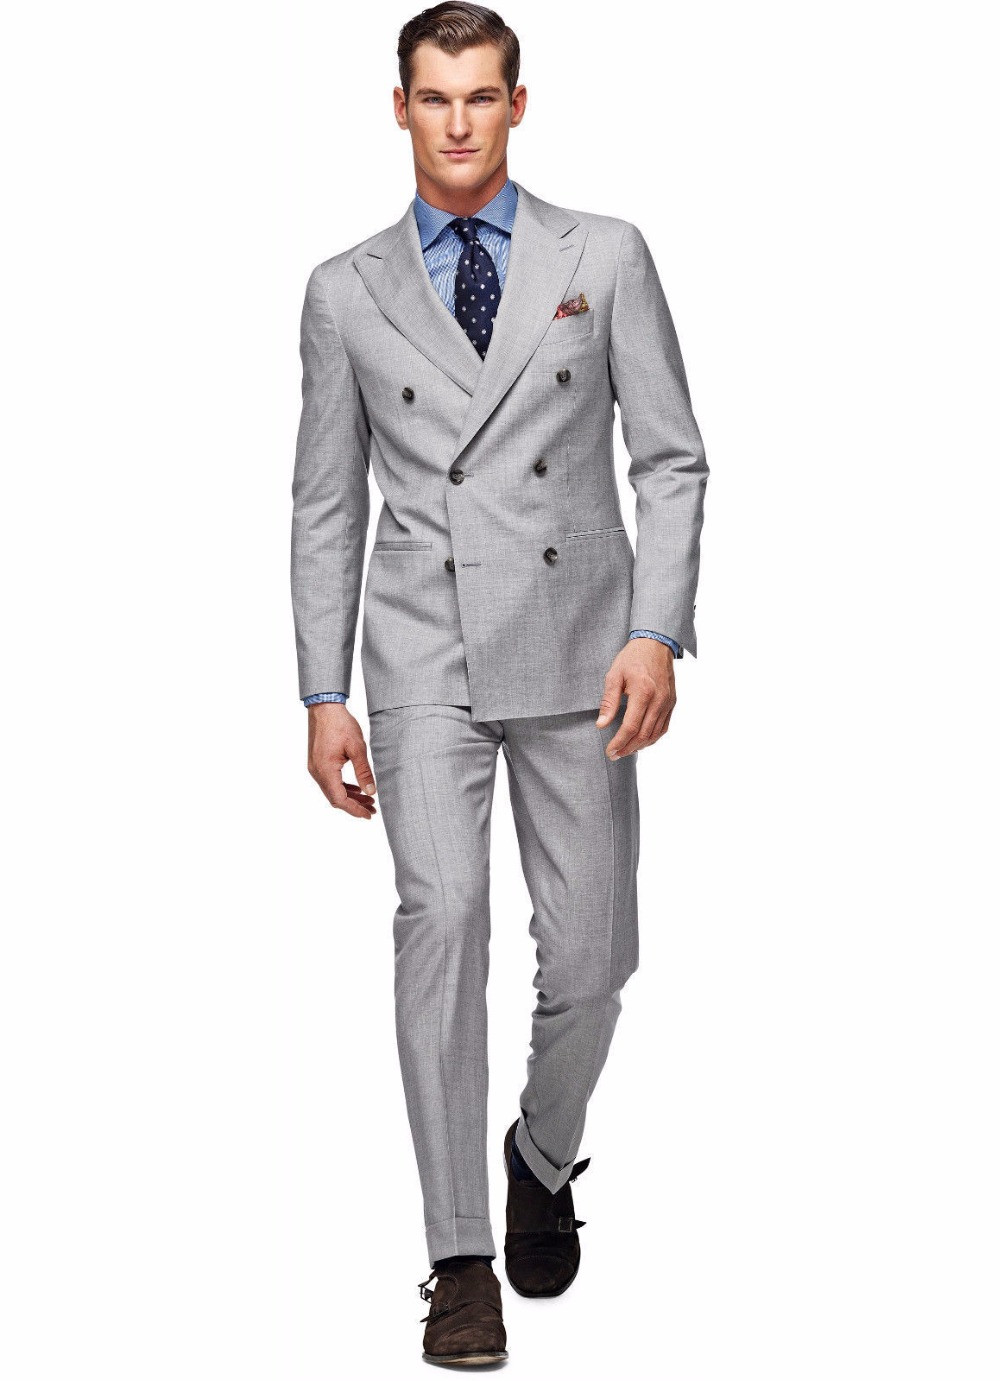 0c93399217c6a US $74.89 30% OFF|FOLOBE Light Grey Custom Made Men Suits Double Breasted  Formal Groom Tuxedos Jacket+Pants Party Dinner Suits -in Suits from Men's  ...